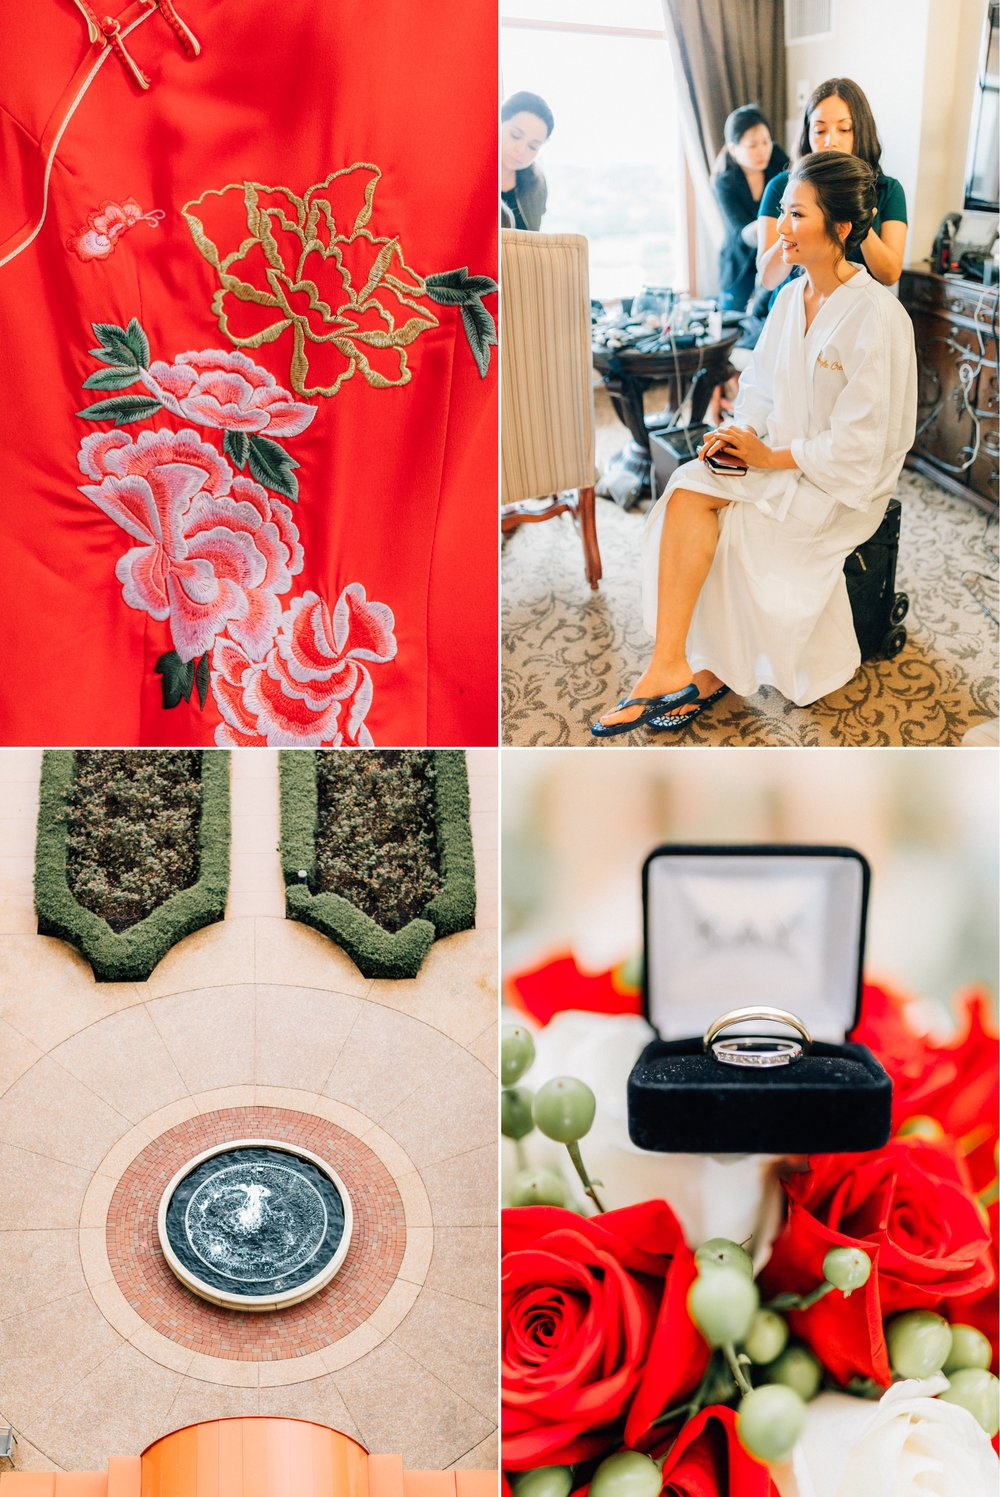 Lakehouse Lake Nona Wedding- Modern Colorful Red Multicultural- Susan + Manolo 2.jpg